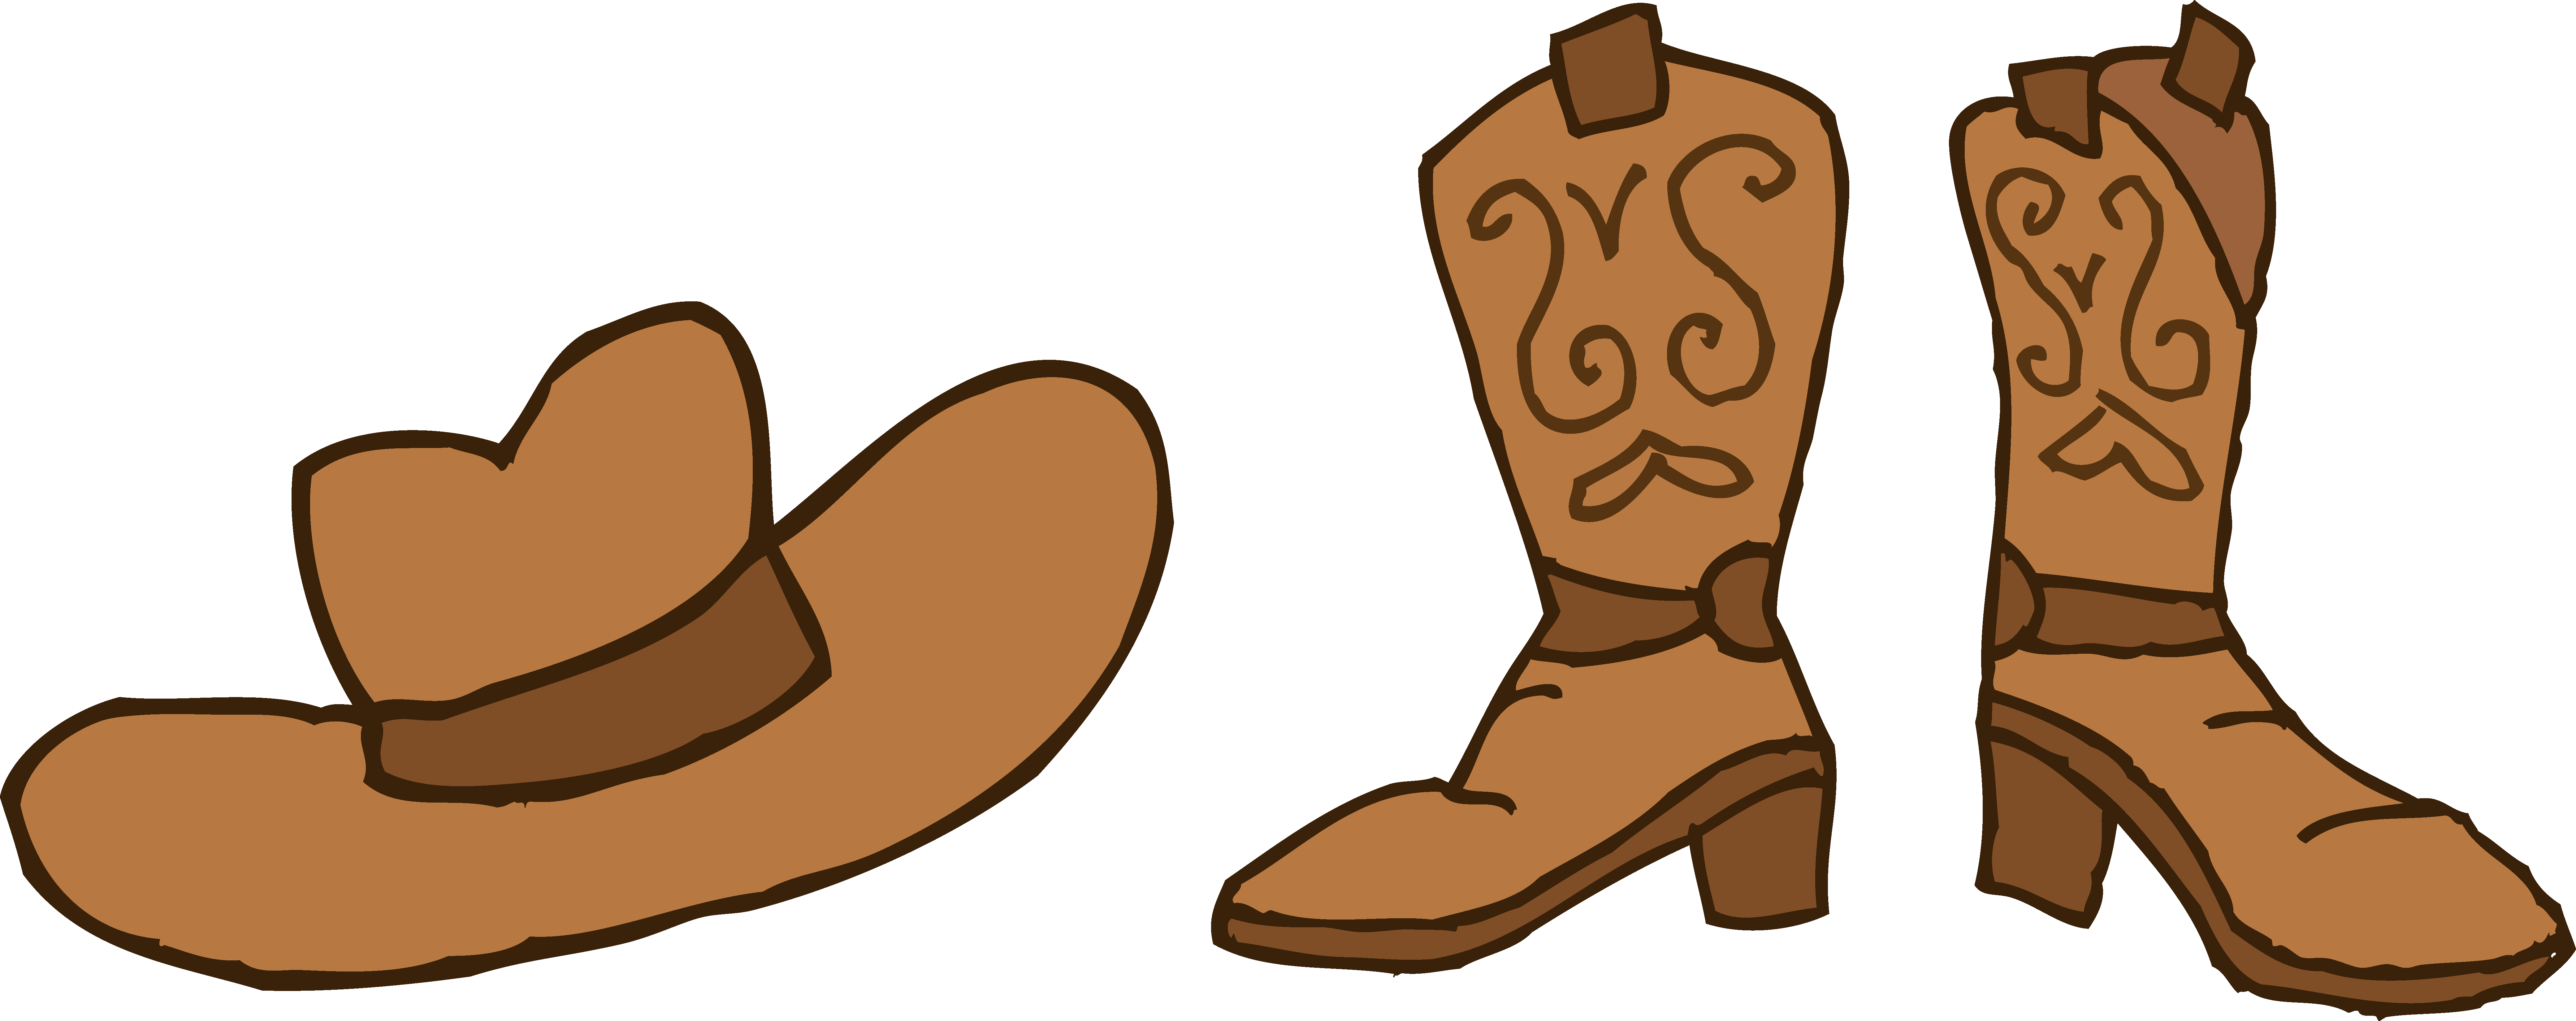 Cowboy hat and boots. Mittens clipart boot